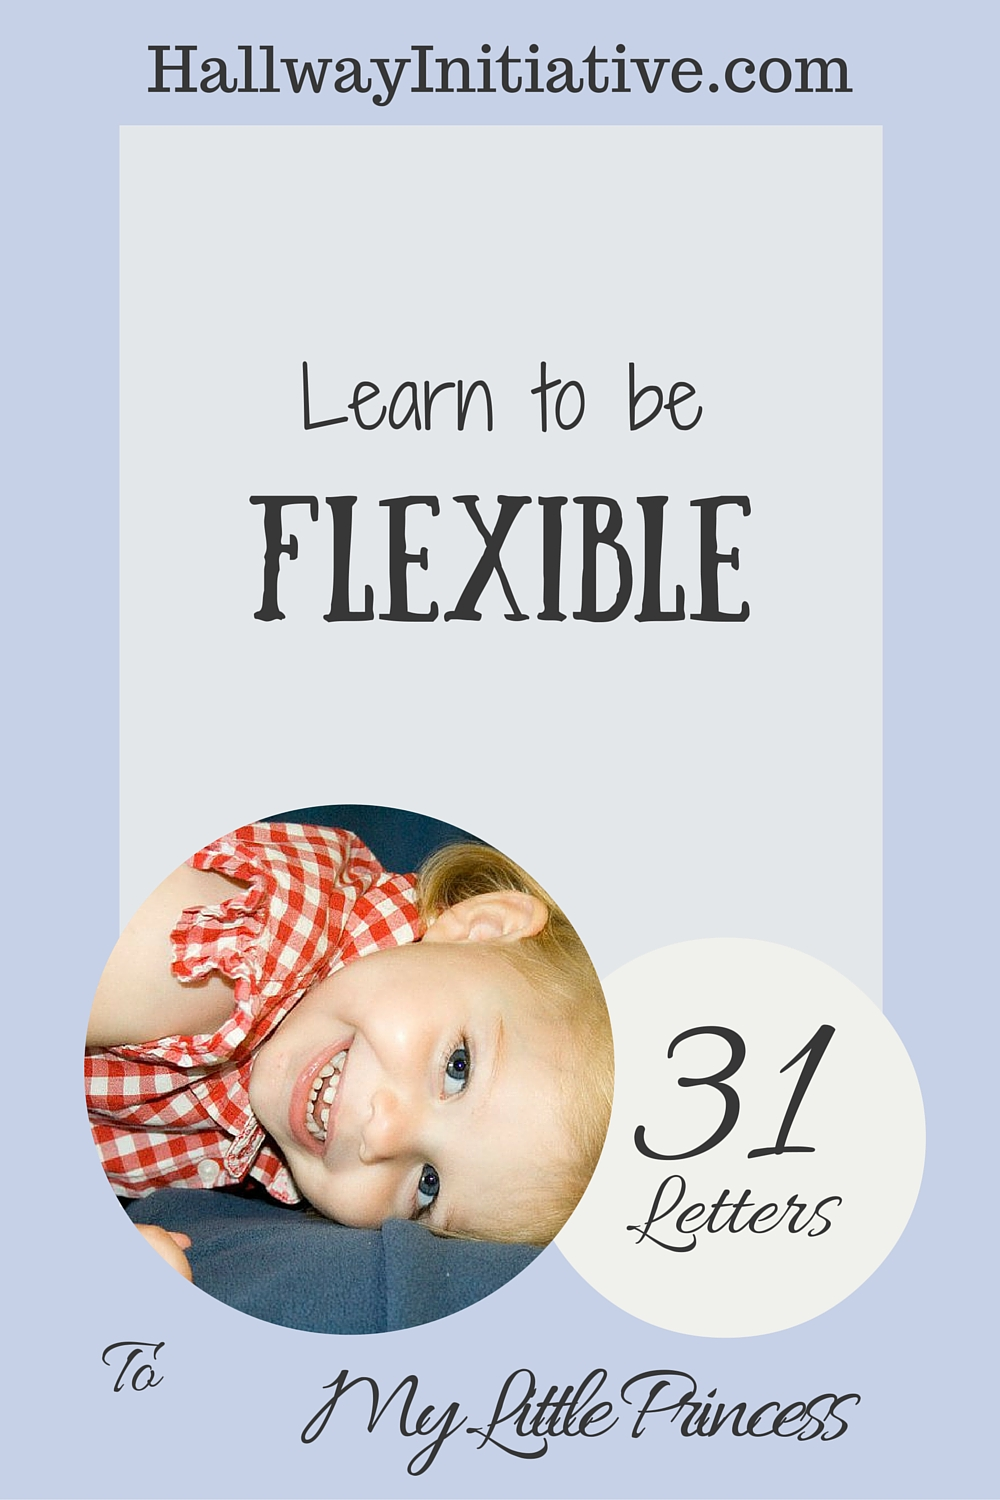 Learn to be flexible